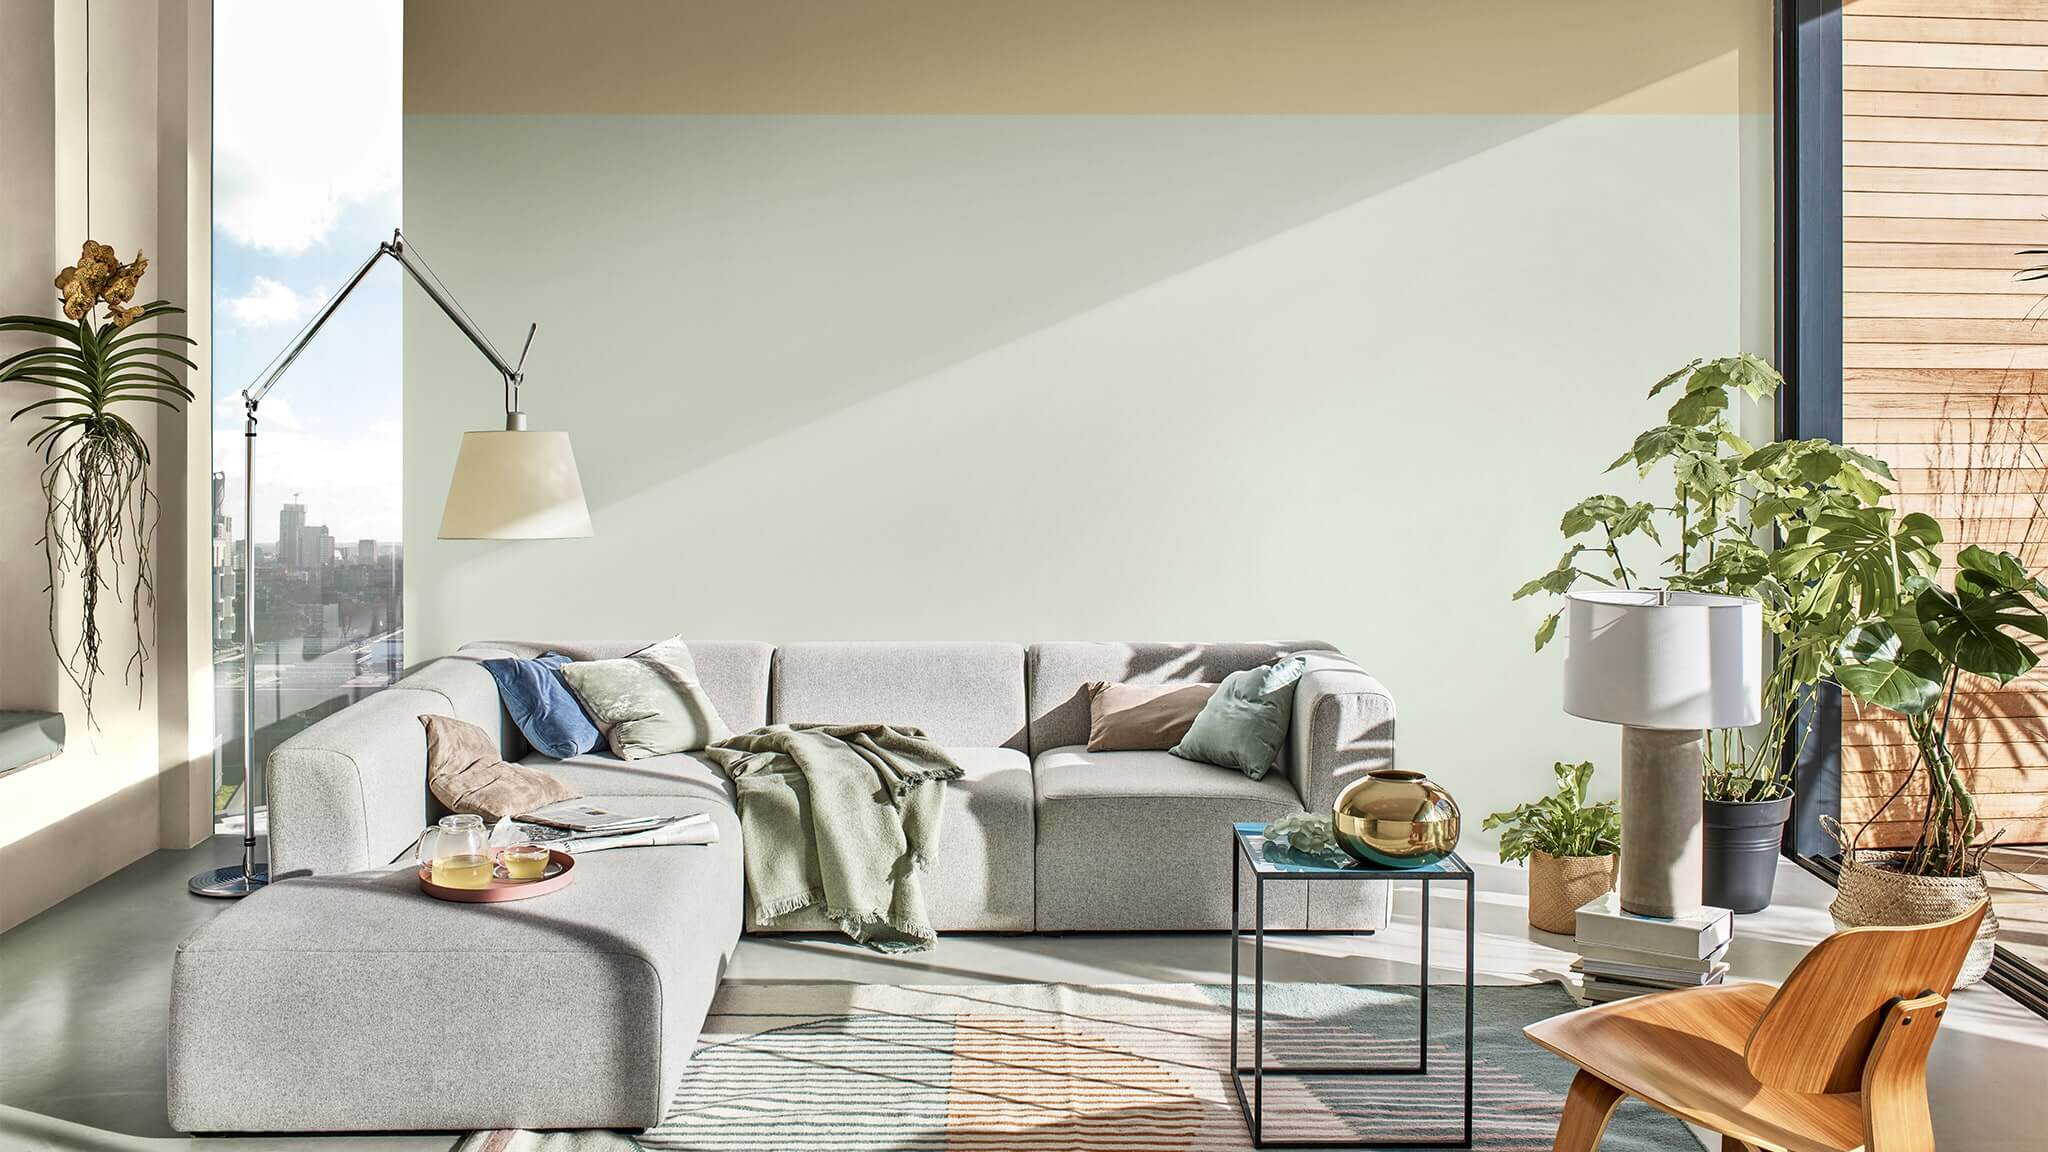 newsroom-dulux-colour-futures-colour-of-the-year-2020-a-home-for-care-livingroom-inspiration-global-1.jpg